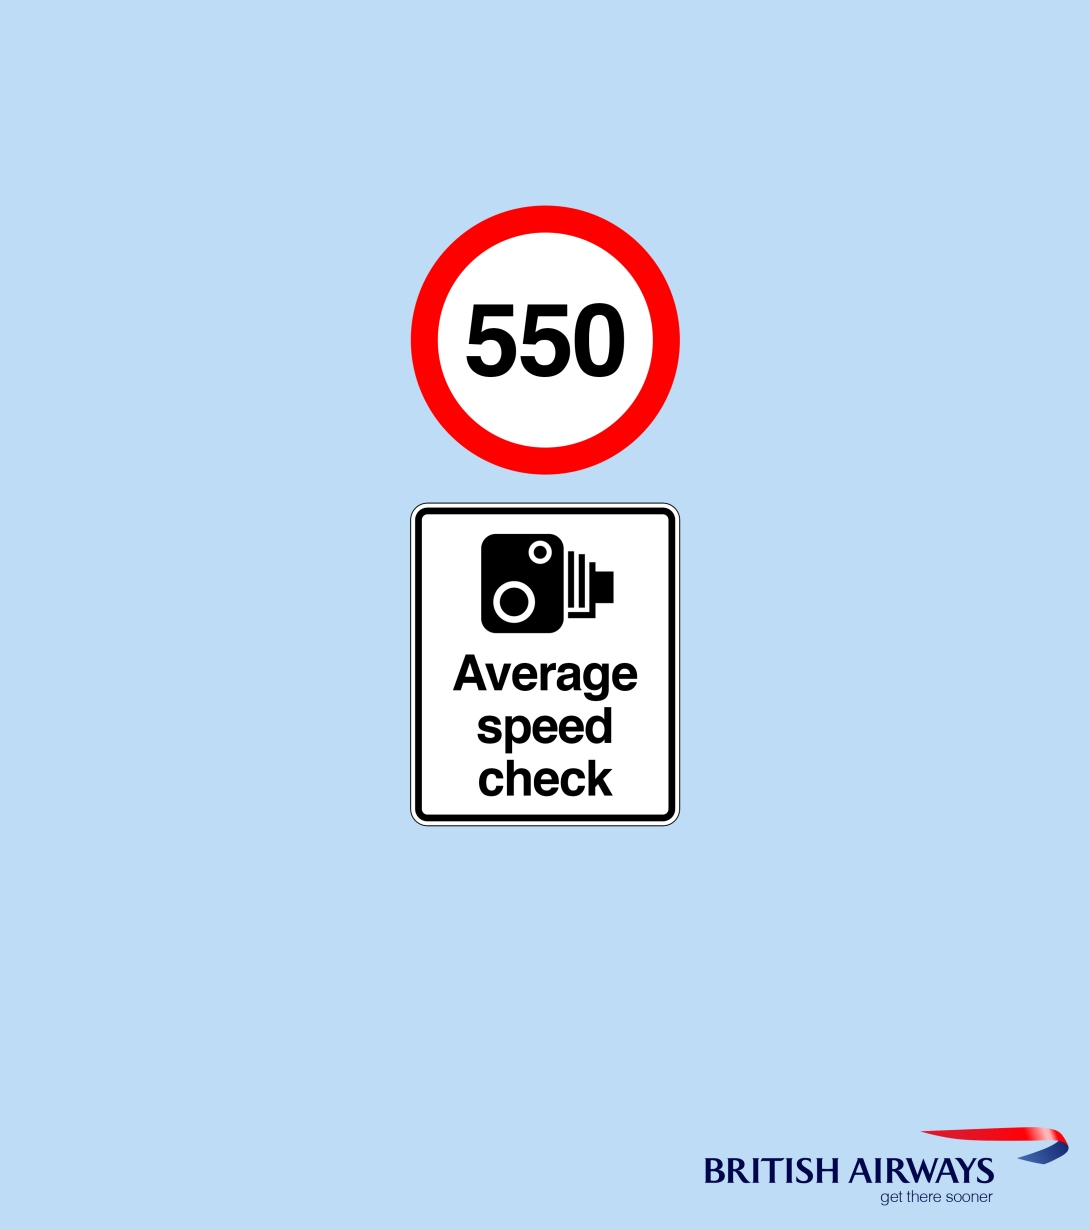 ad idea for British Airways domestic flights - average speed check 550 mph